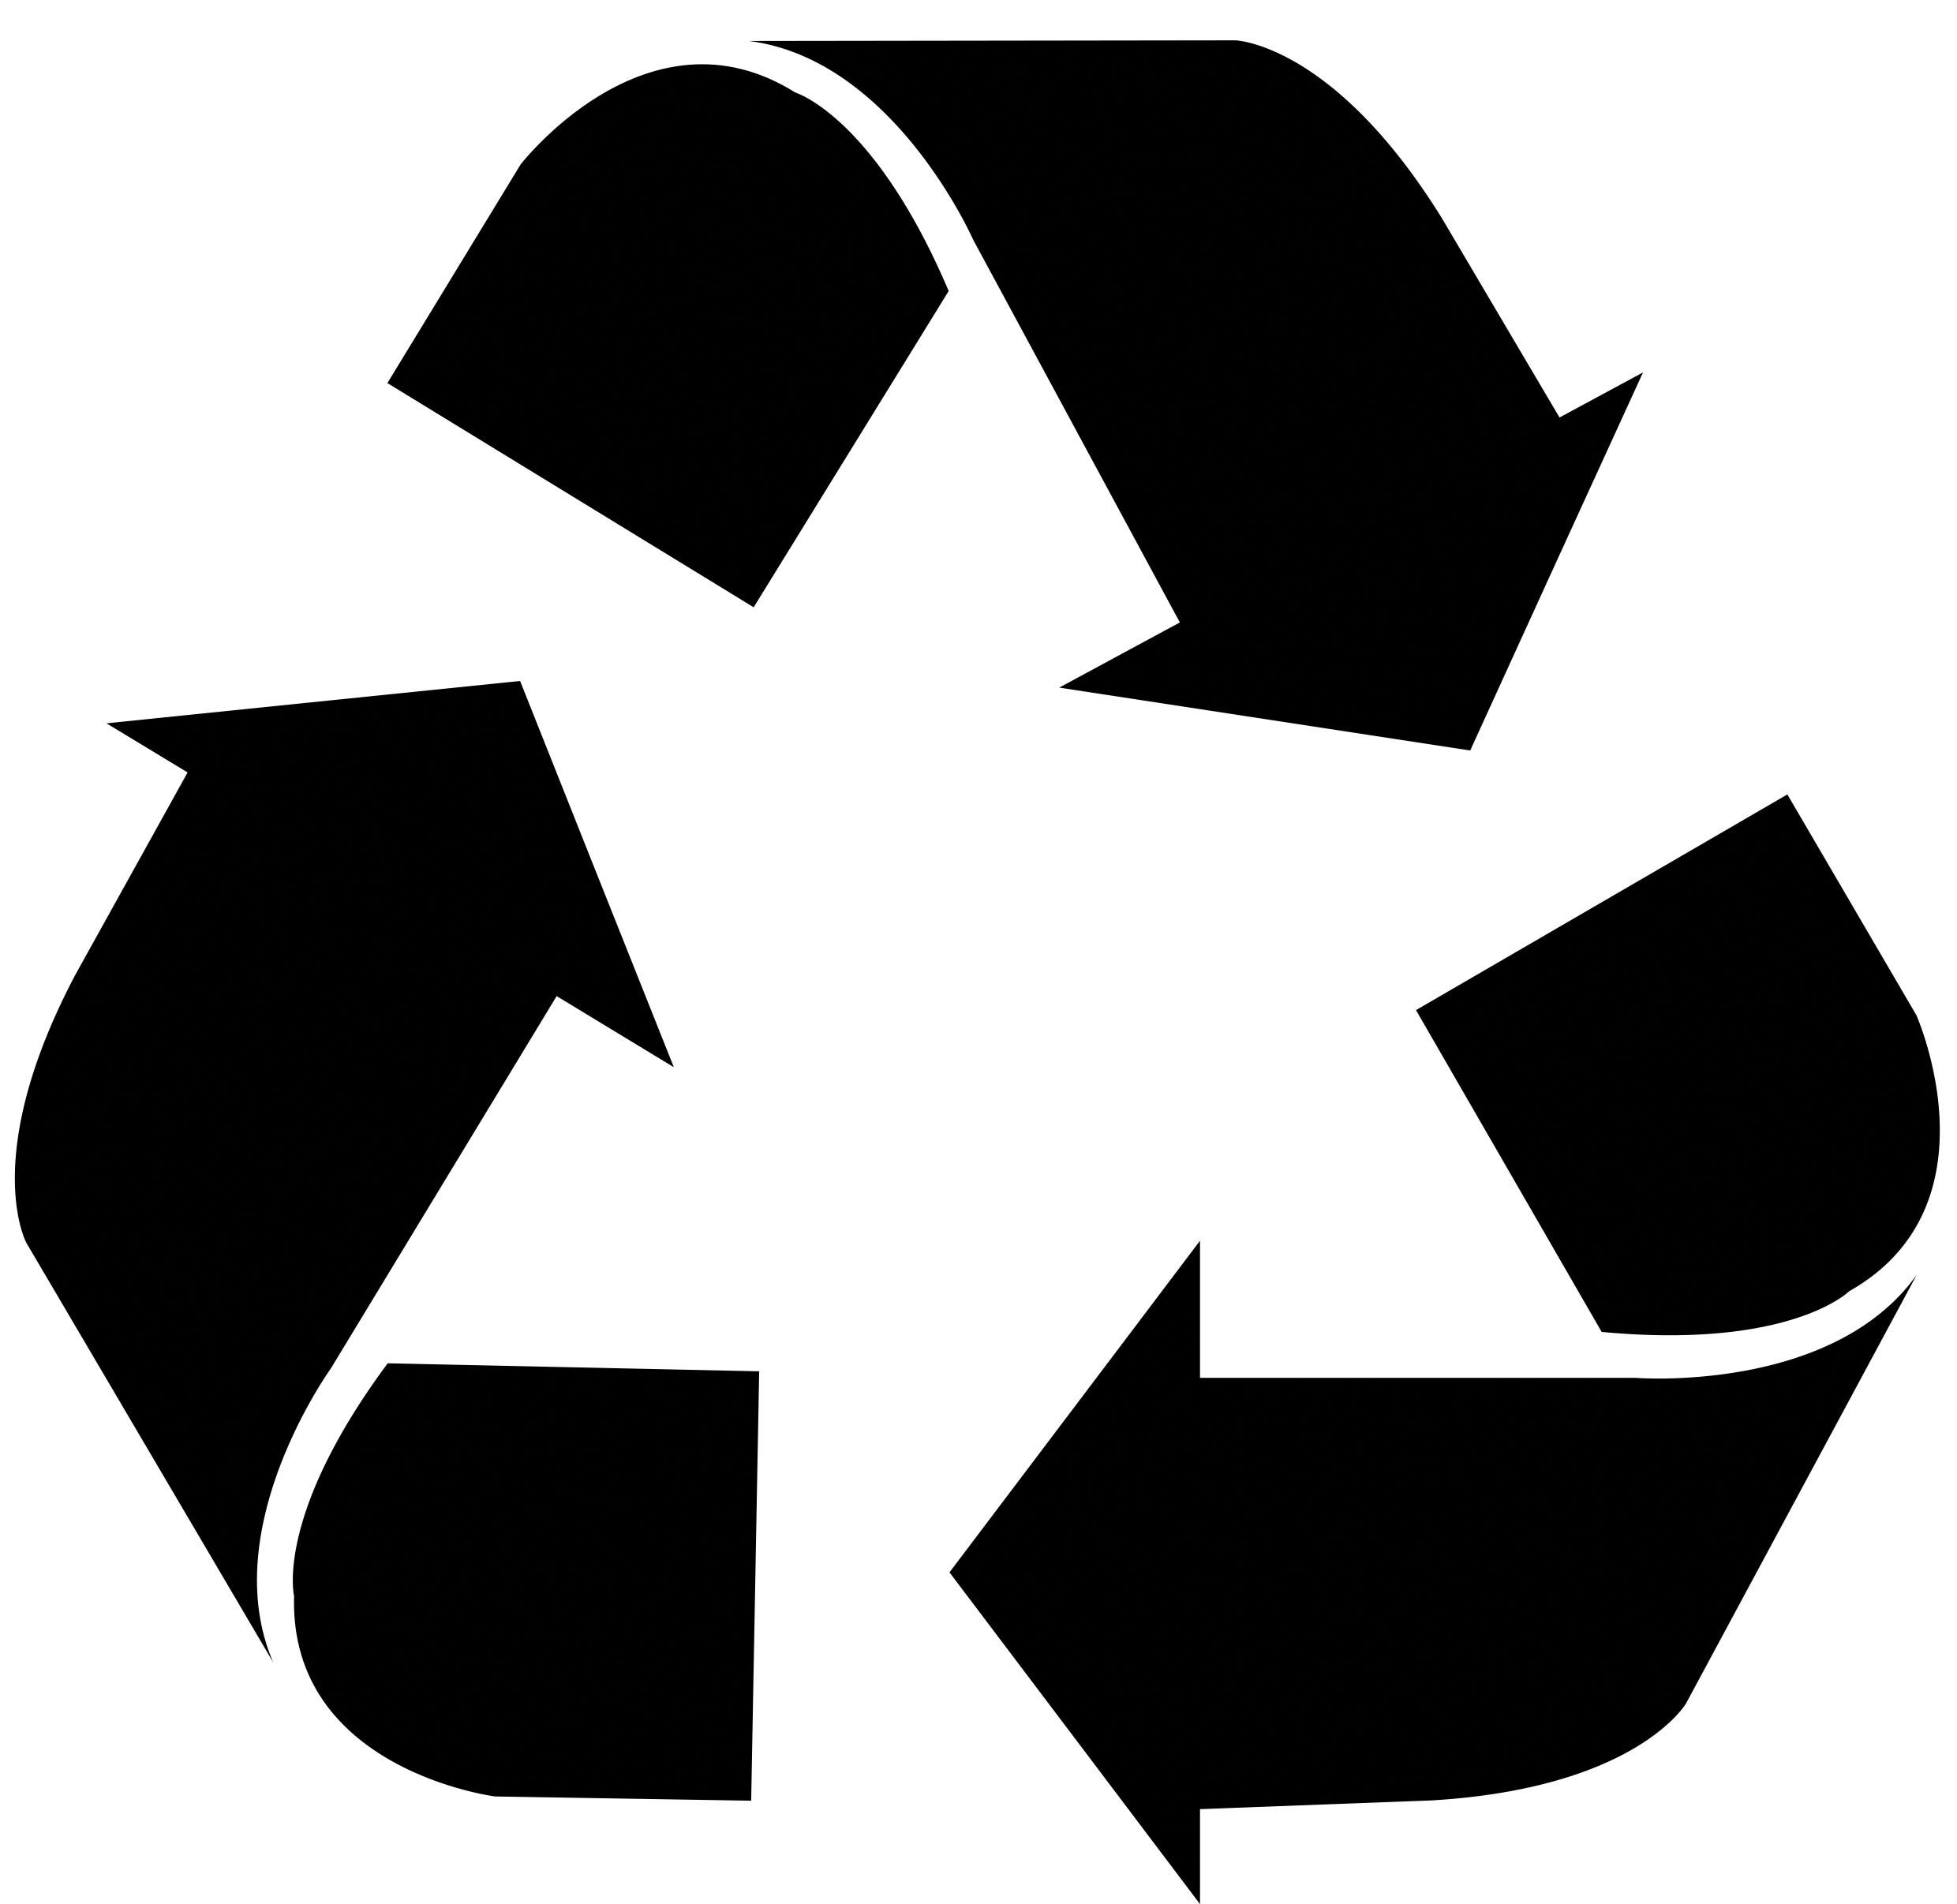 Recycle logo free large images recycling pinterest for Recycle stencil printable